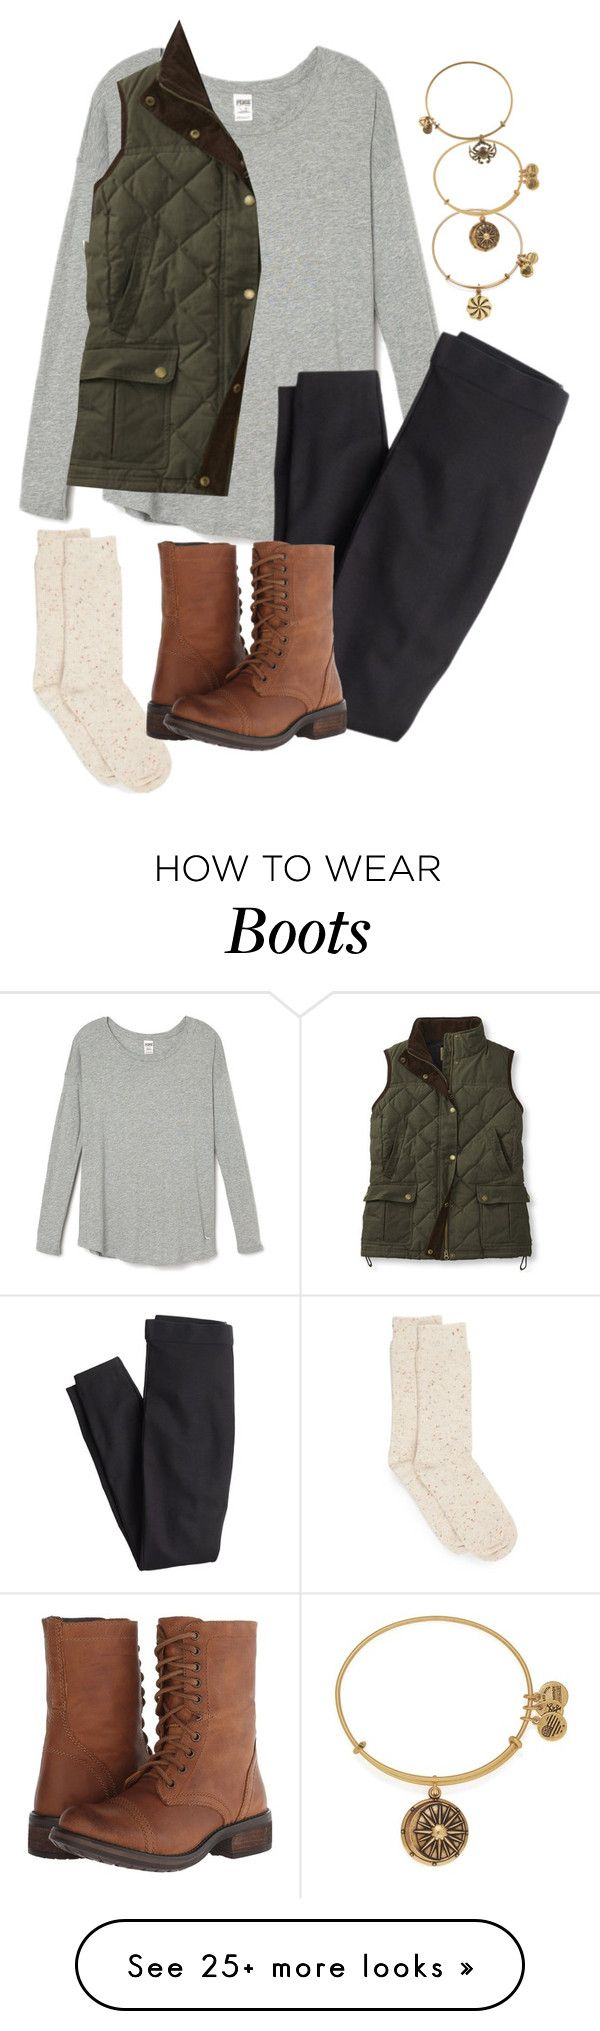 """""""L.L. Bean Vest and Boots"""" by northernprep-nl12 on Polyvore featuring Hue, J.Crew, Steve Madden and Alex and Ani"""